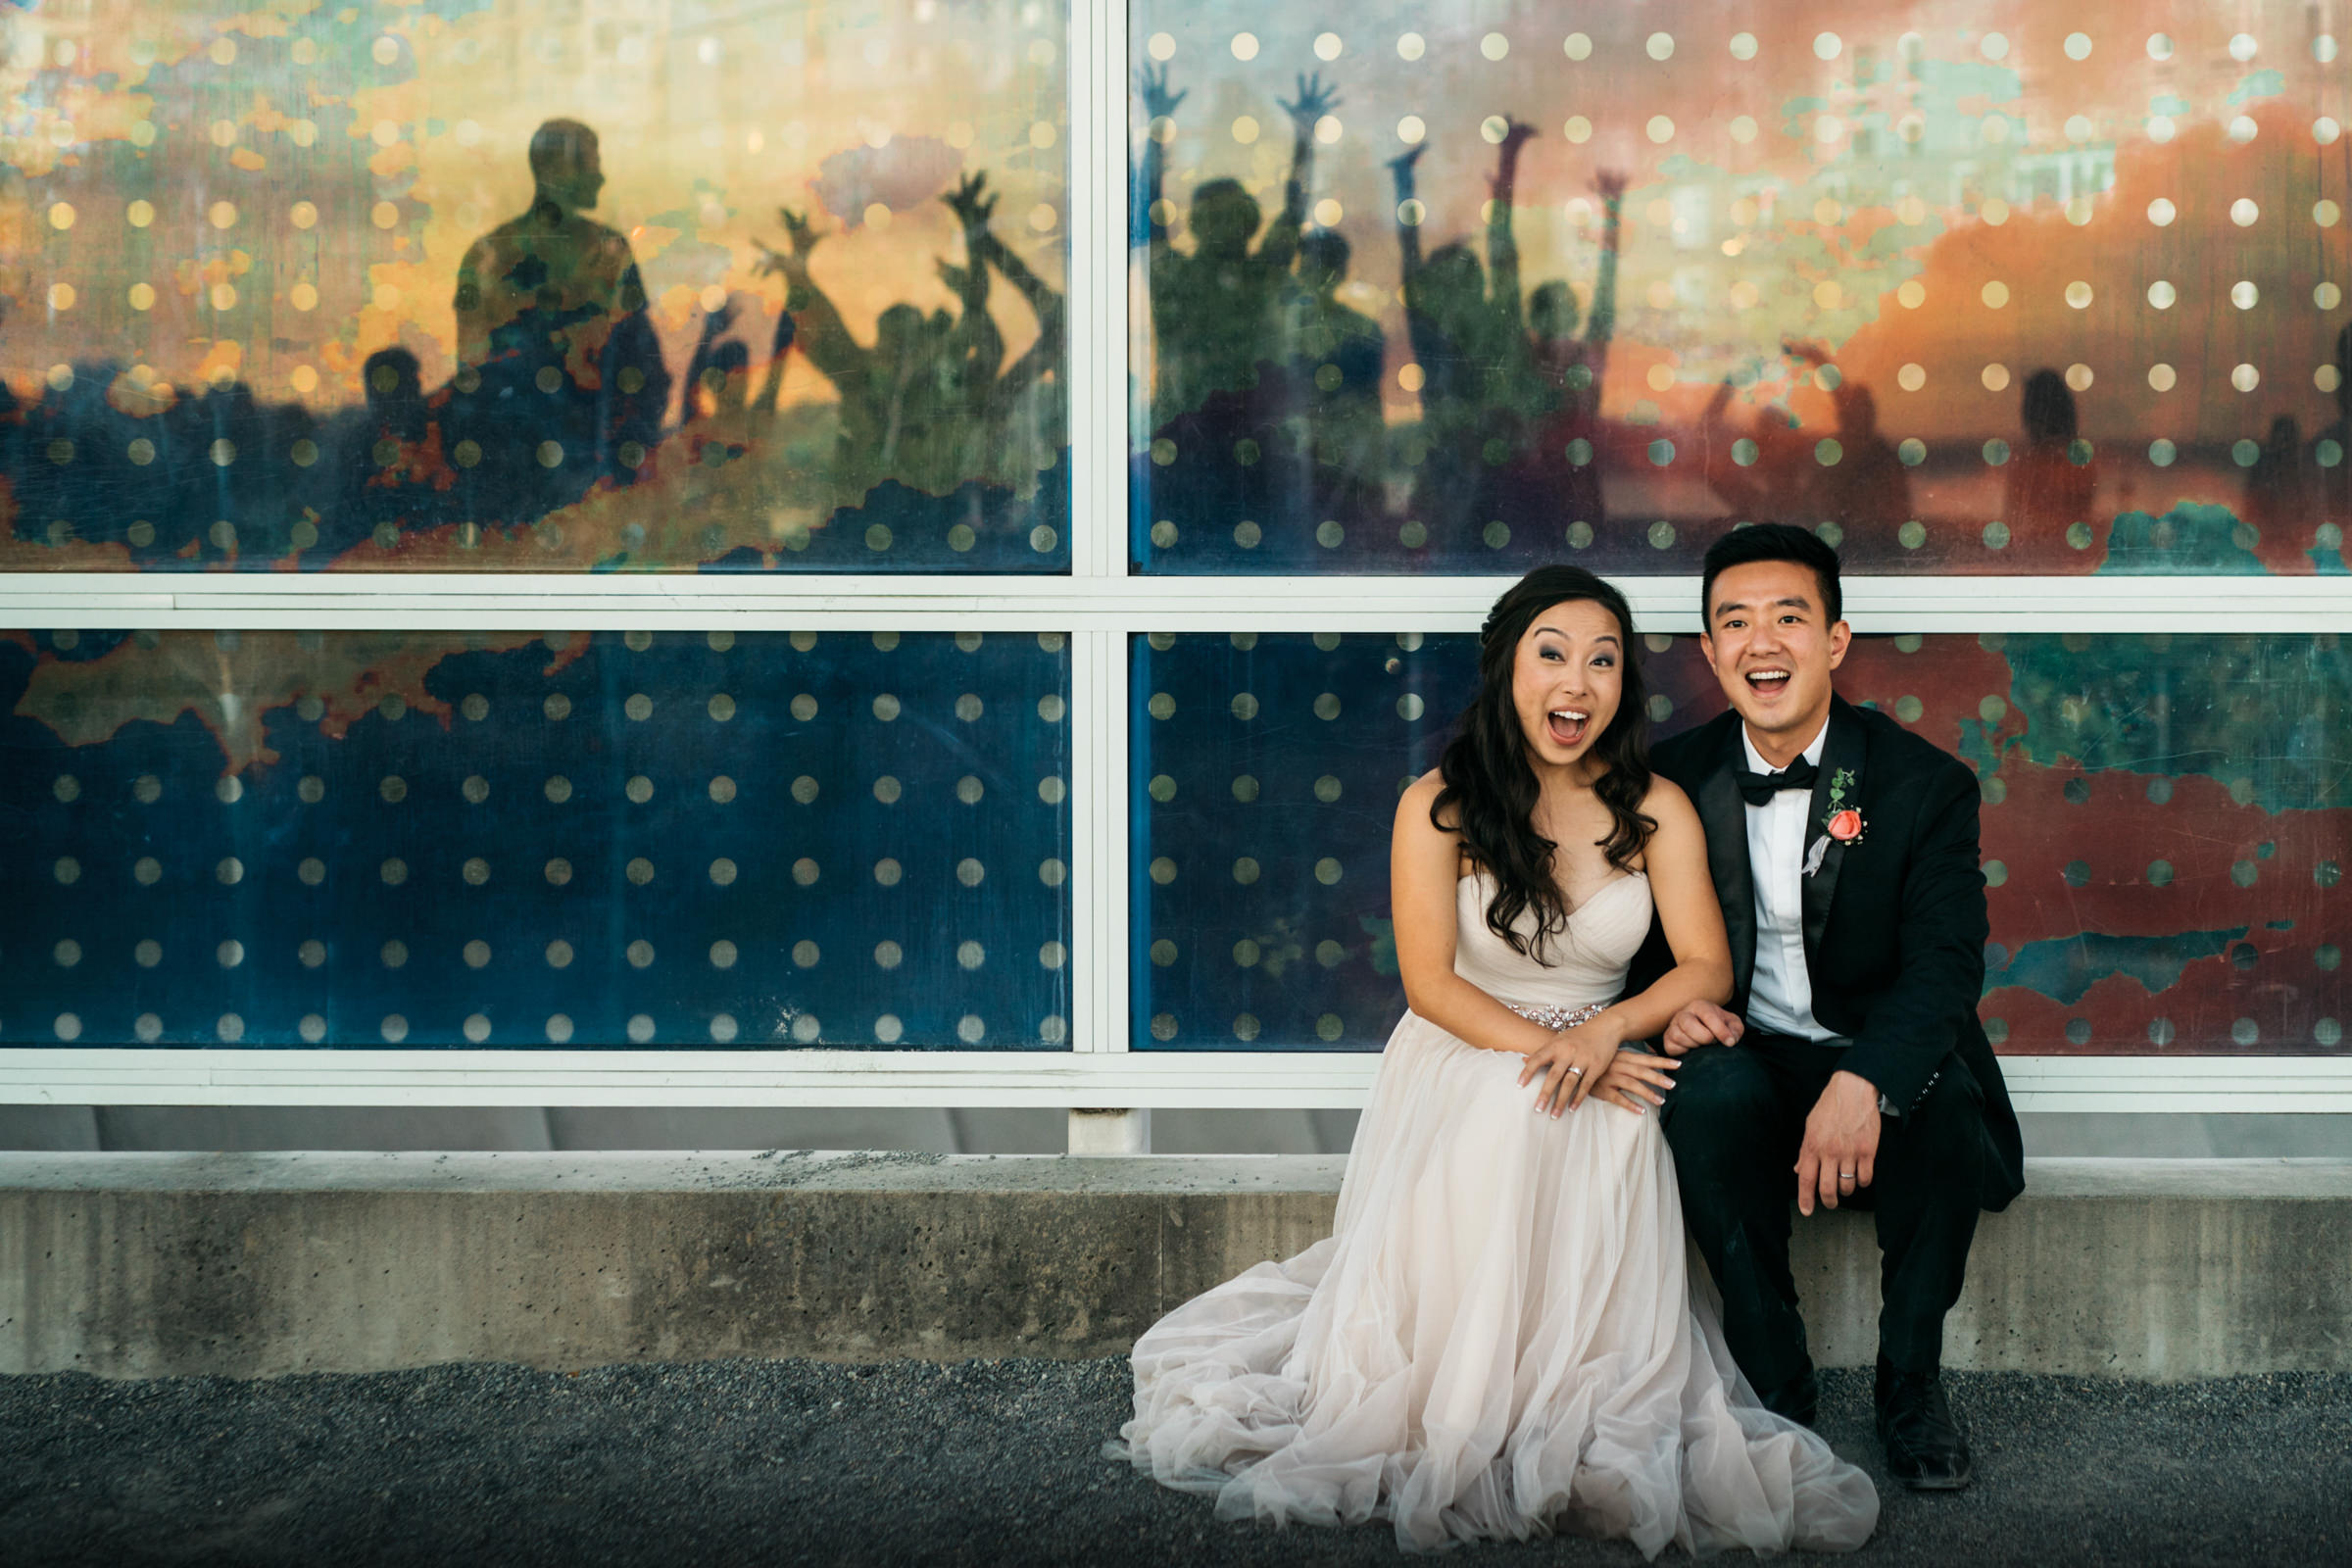 Seated couple portrait against silhouetted revelers - photo by Sasha Reiko Photography